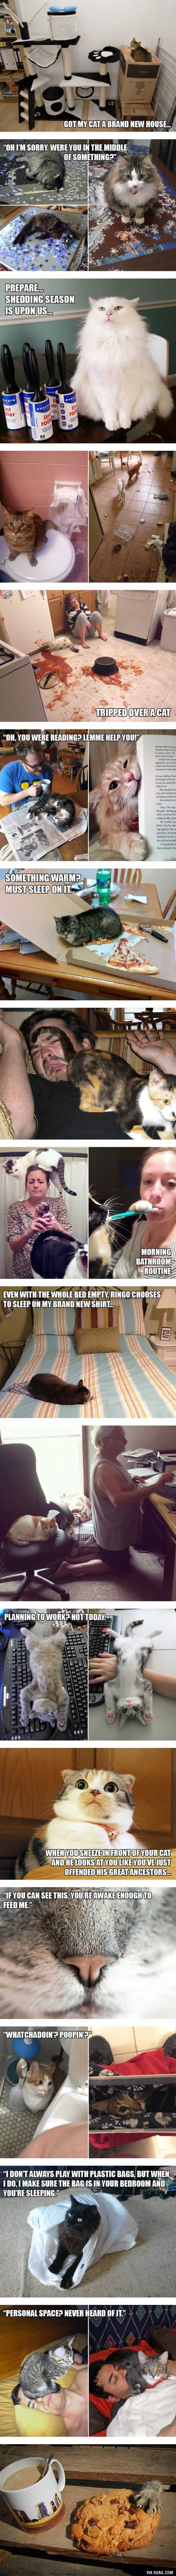 Hilarious Struggles Only Cat Owners Will Understand. I can' t tell you how true some of these are